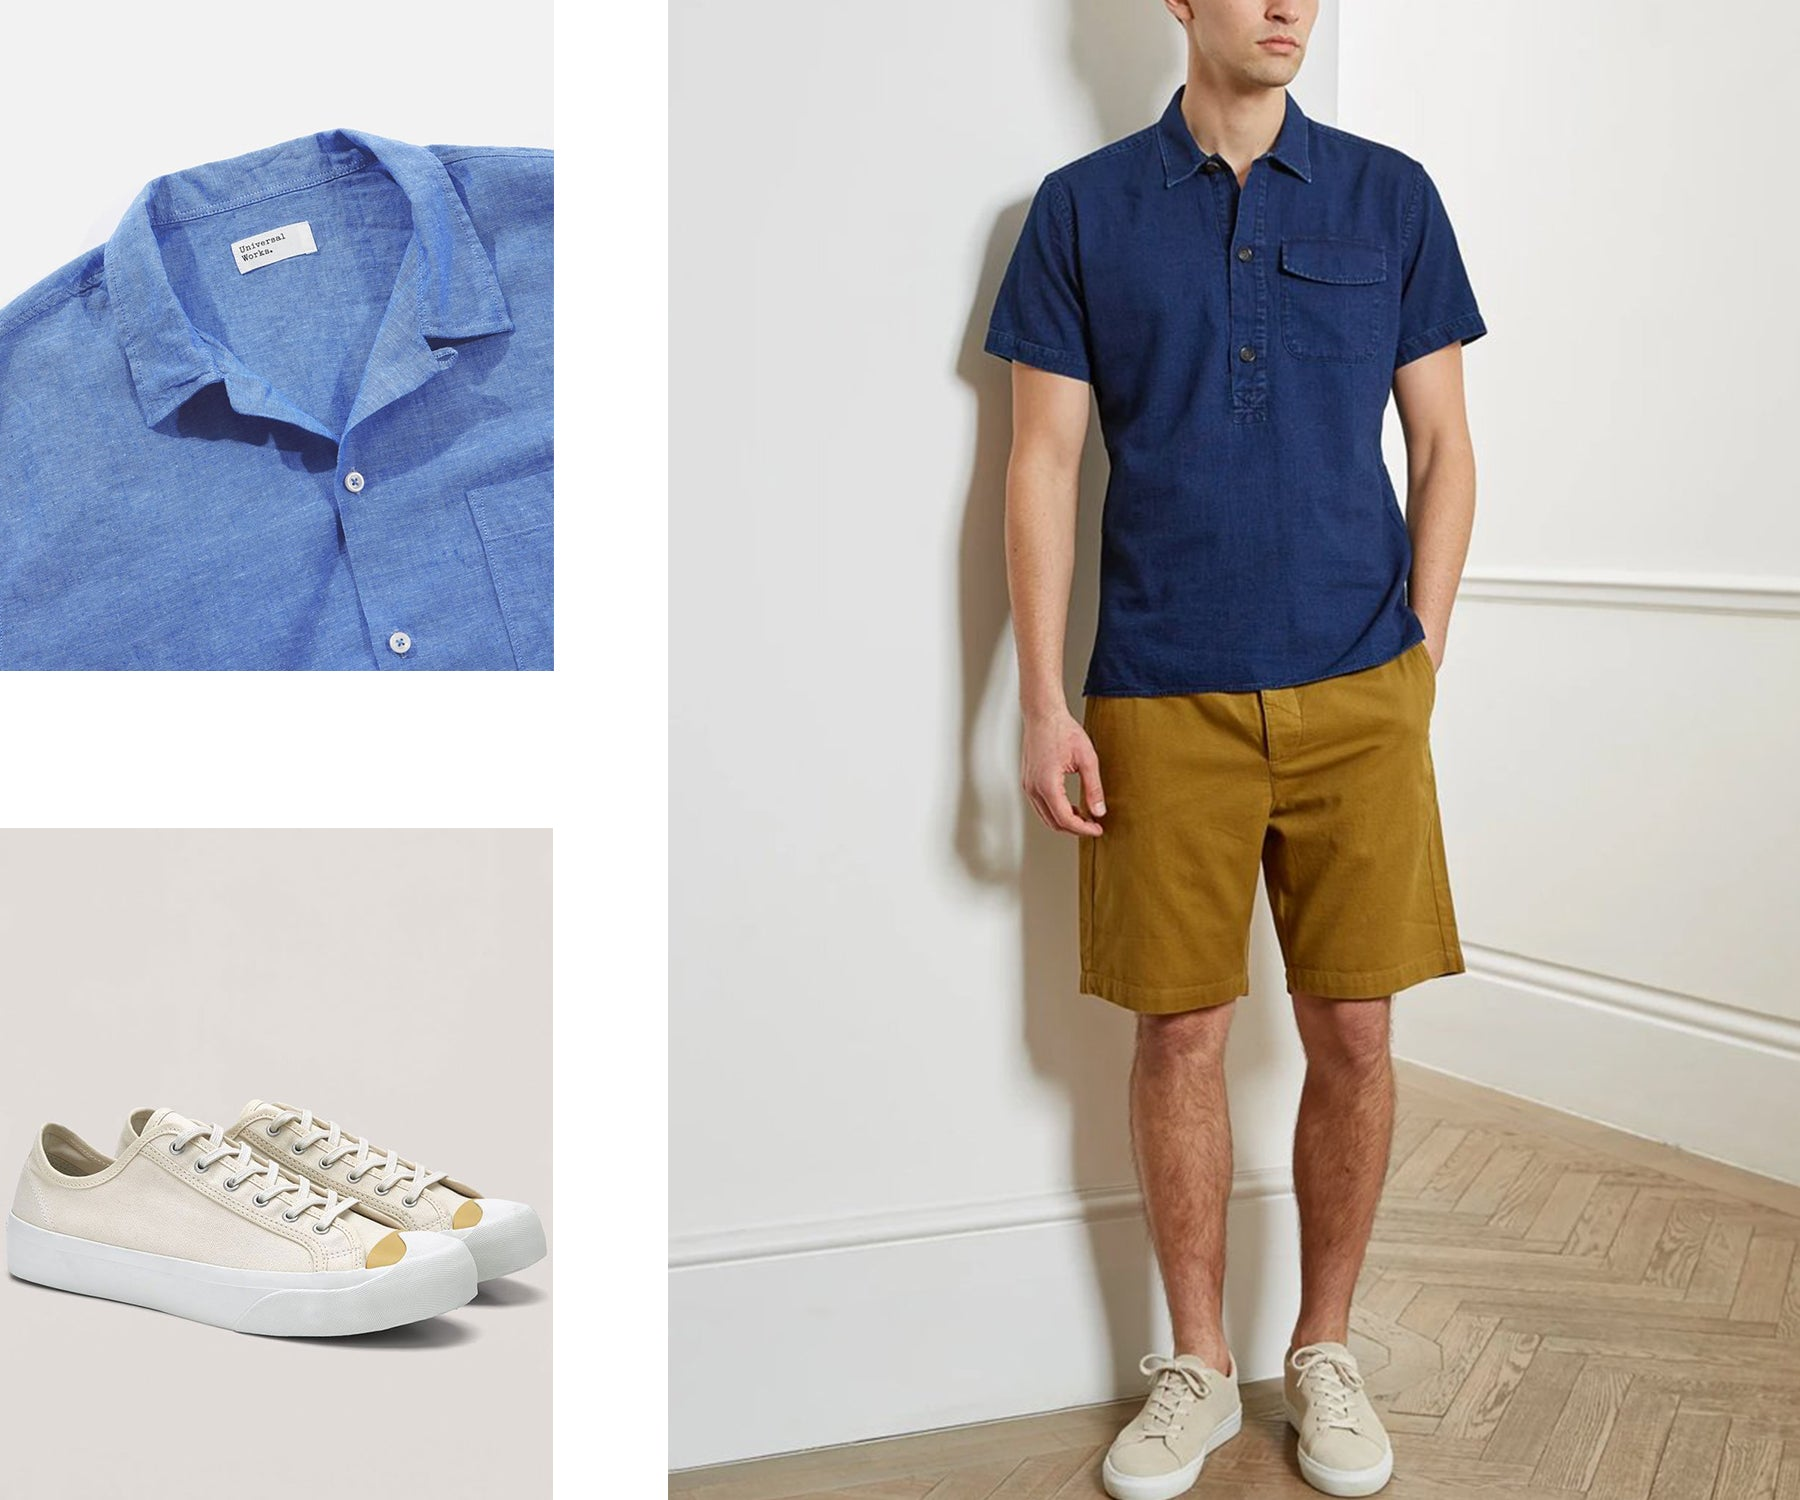 How to style out the heat - menswear outfit